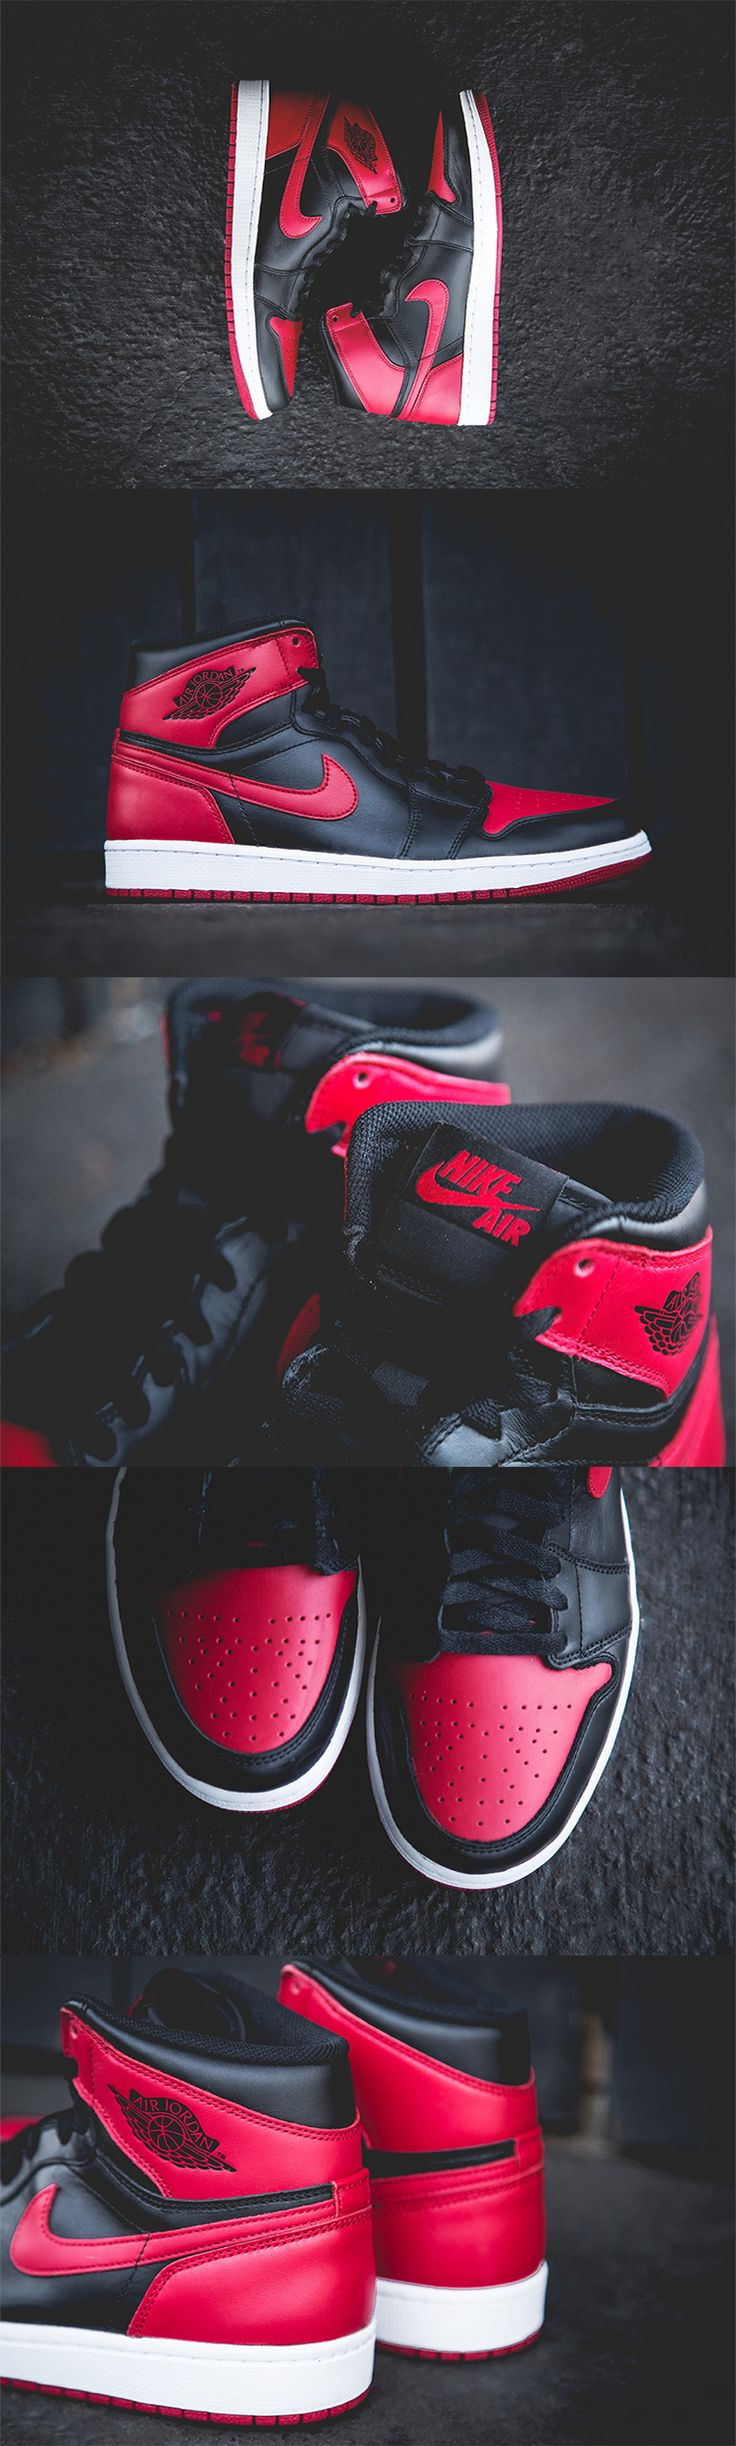 "new arrival 7dec2 2be43 Air Jordan 1 Retro - ""Bred"" New Hip Hop Beats Uploaded EVERY SINGLE DAY  air  jordan 1 chicago wallpaper for iphone ..."